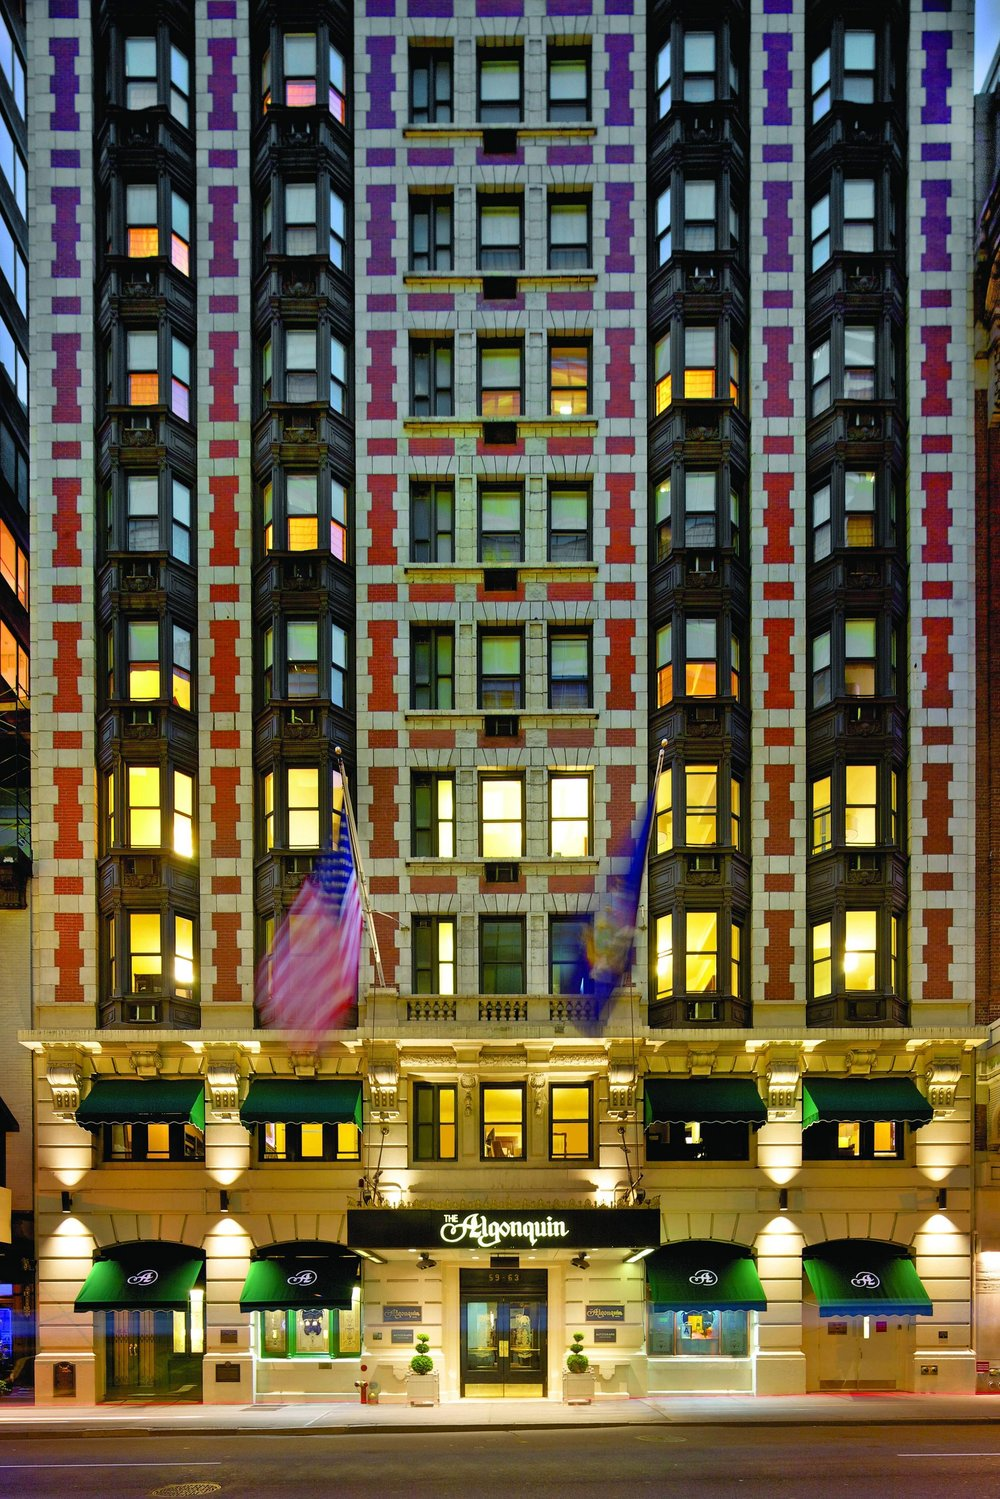 The Algonquin Hotel, New York -